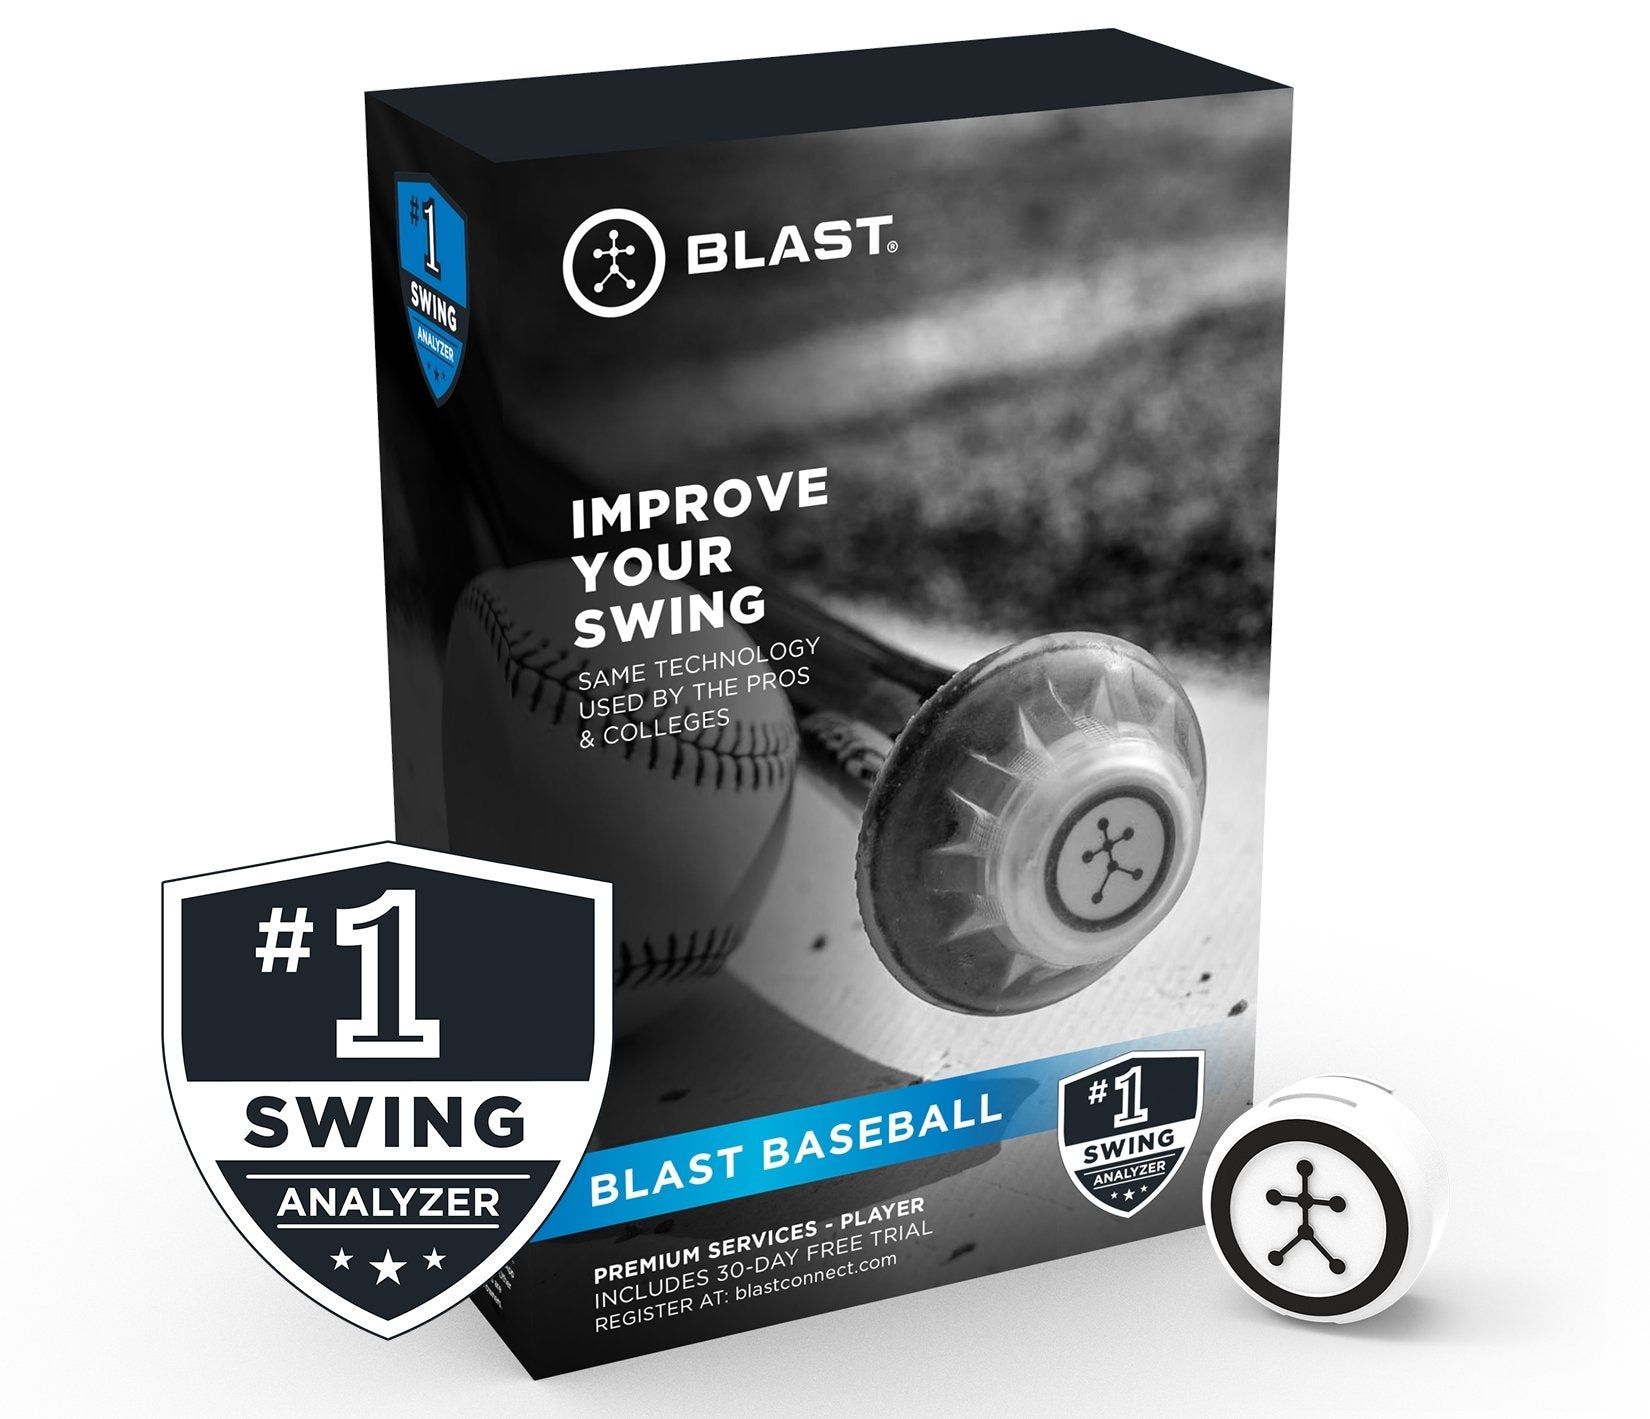 BLAST BASEBALL - No Errors Sports